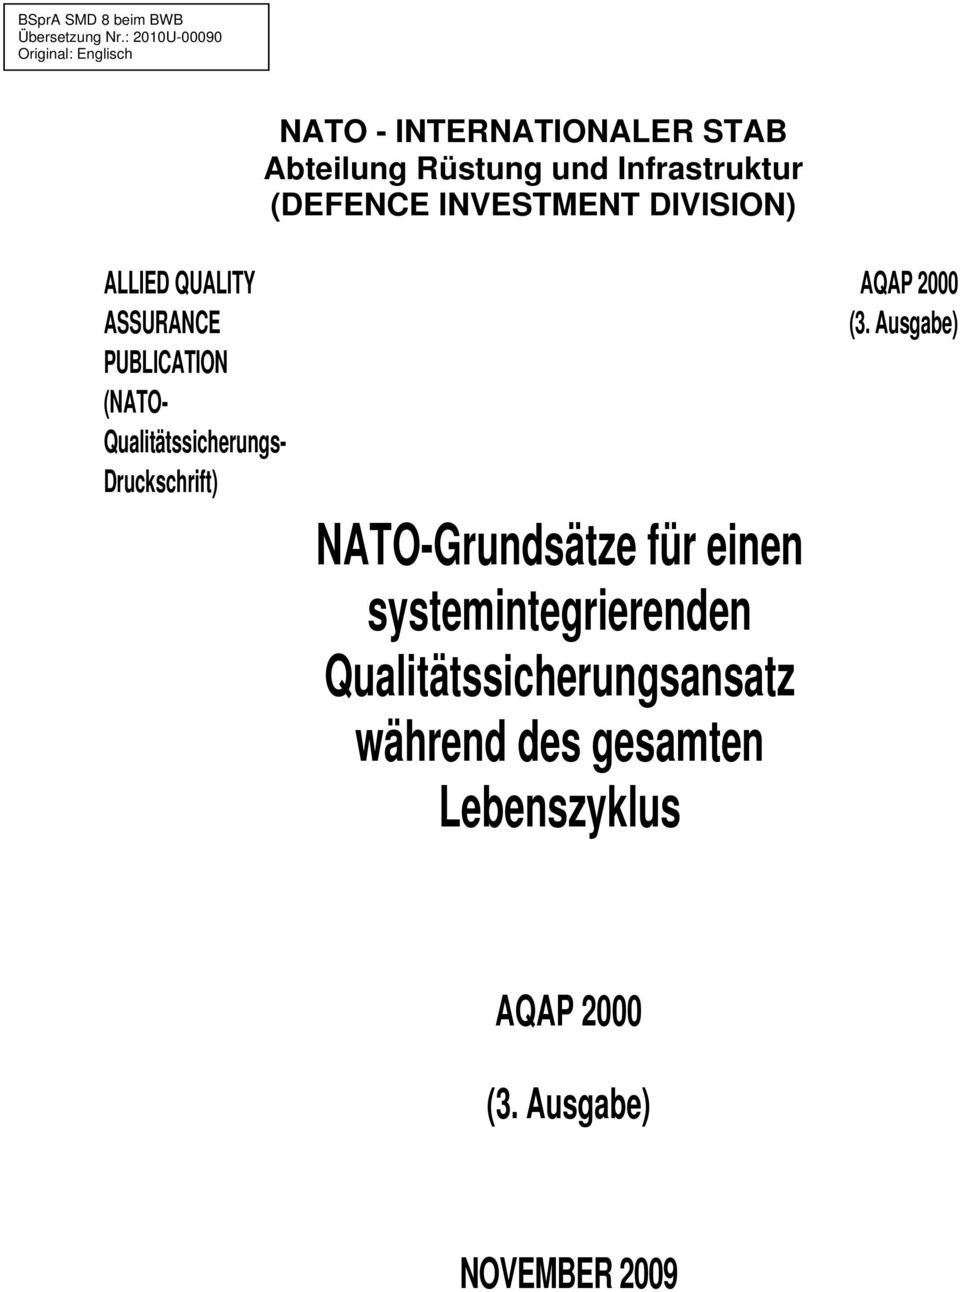 Infrastruktur (DEFENCE INVESTMENT DIVISION) ALLIED QUALITY ASSURANCE PUBLICATION (NATO-